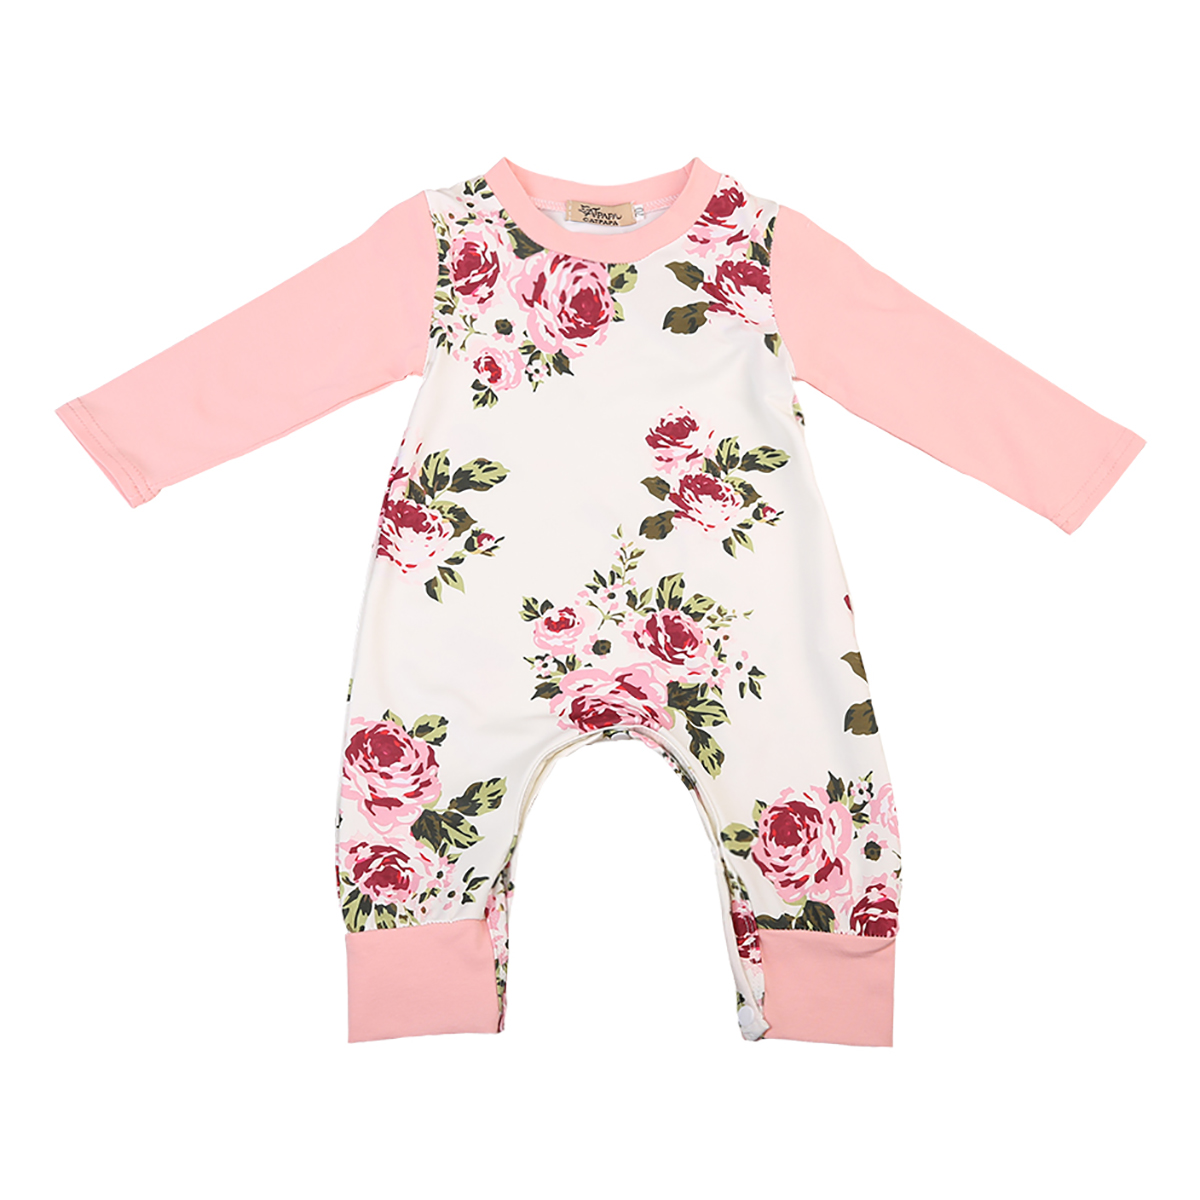 2017 Newborn Kids Infant Baby Girls Long Sleeve Floral Printed Romper Jumpsuit Clothes Cute Casual Long Baby Romper